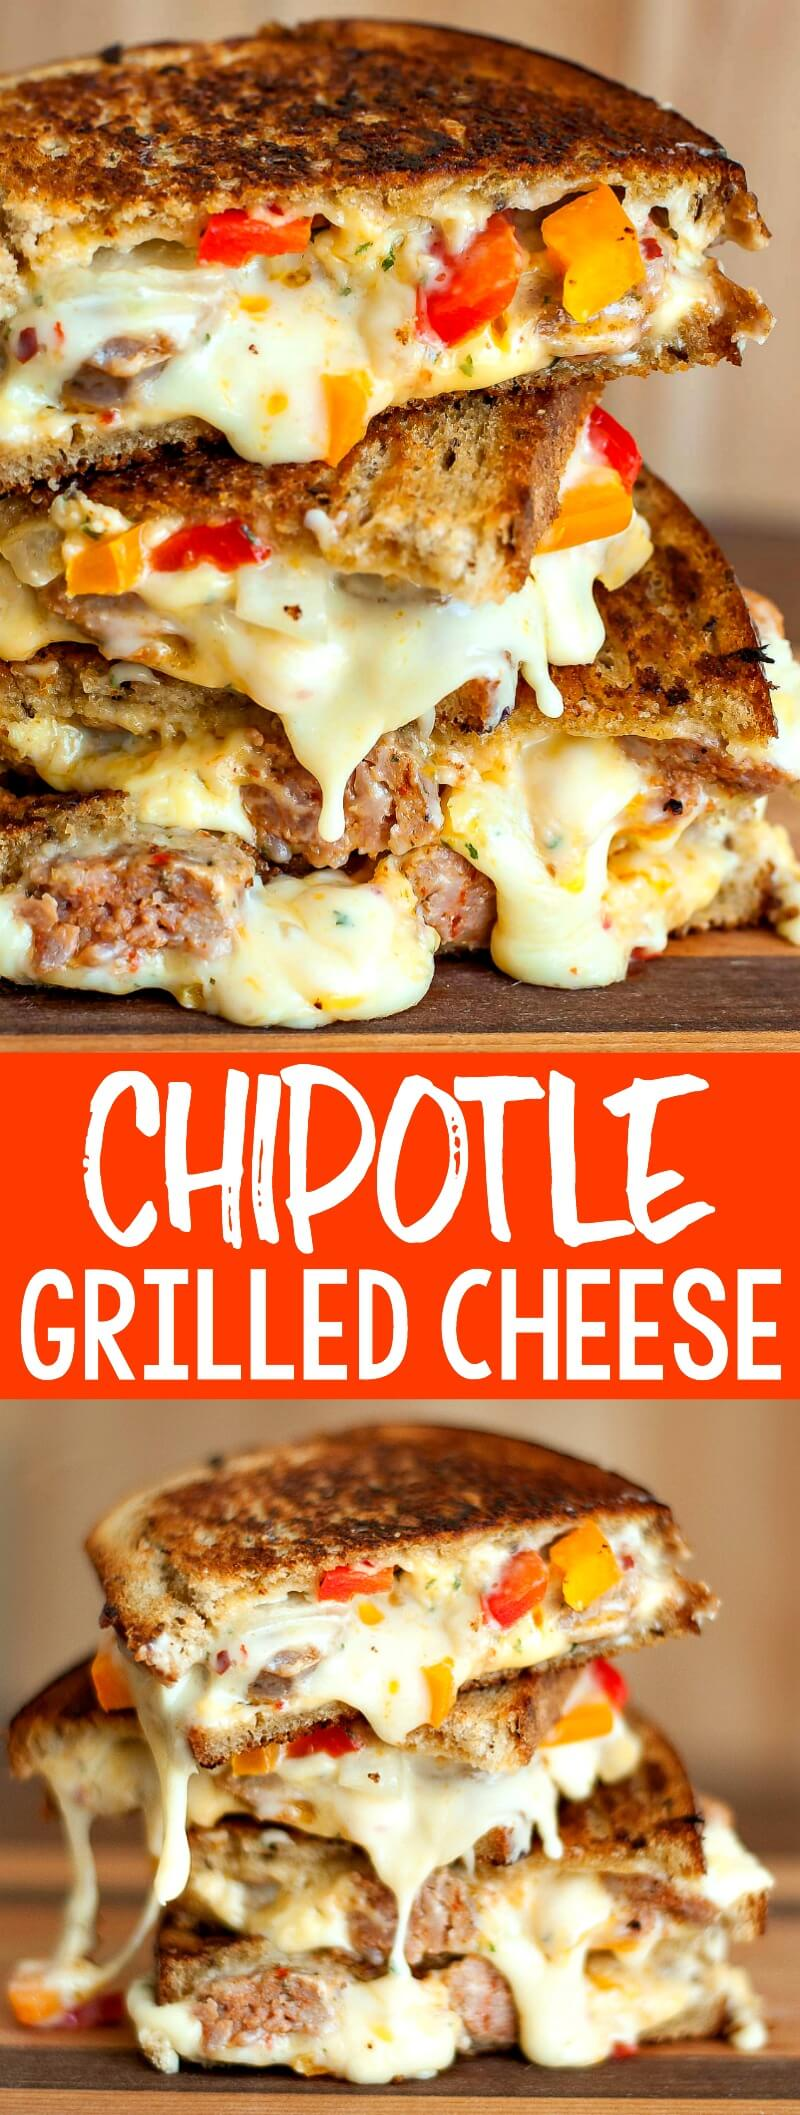 Sausage and Pepper Chipotle Grilled Cheese FTW!Sautéedsausage and peppers are stuffed into the cheesiest, meltiest grilled cheese ever! #grilledcheese #chipotle #comfortfood